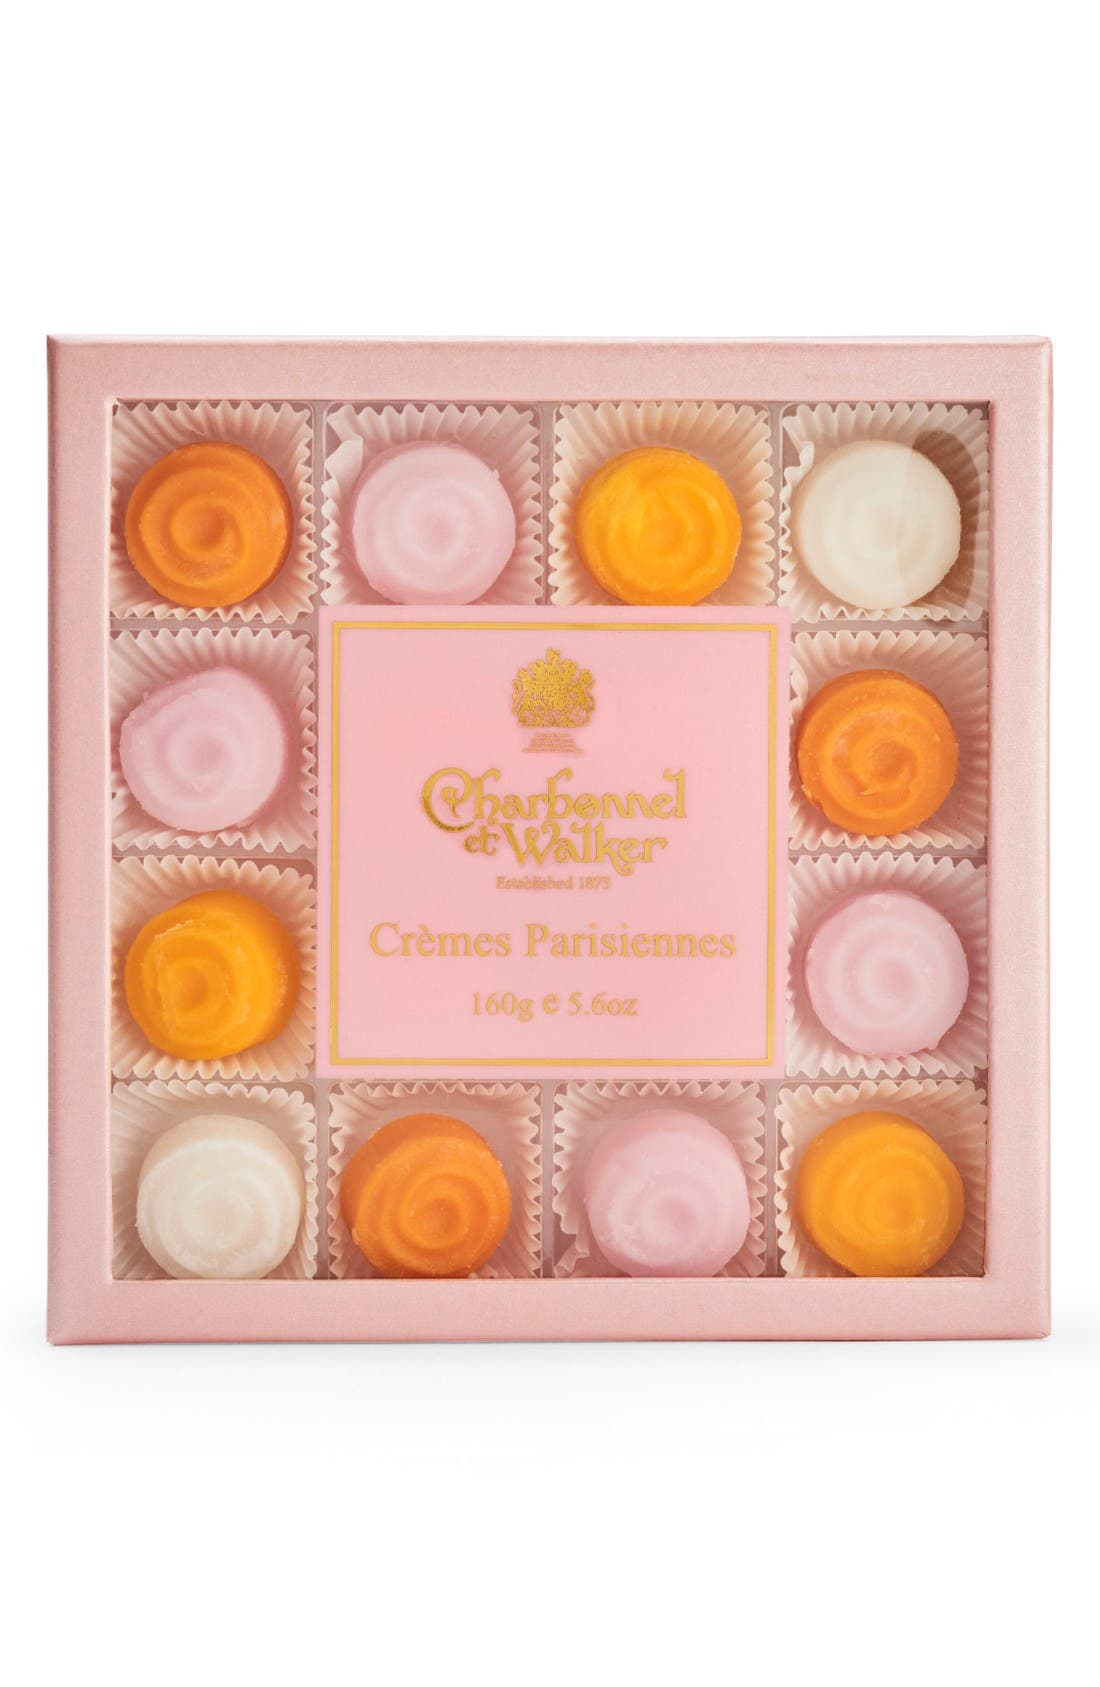 Cremes Parisiennes in Gift Box,                         Main,                         color, Pink